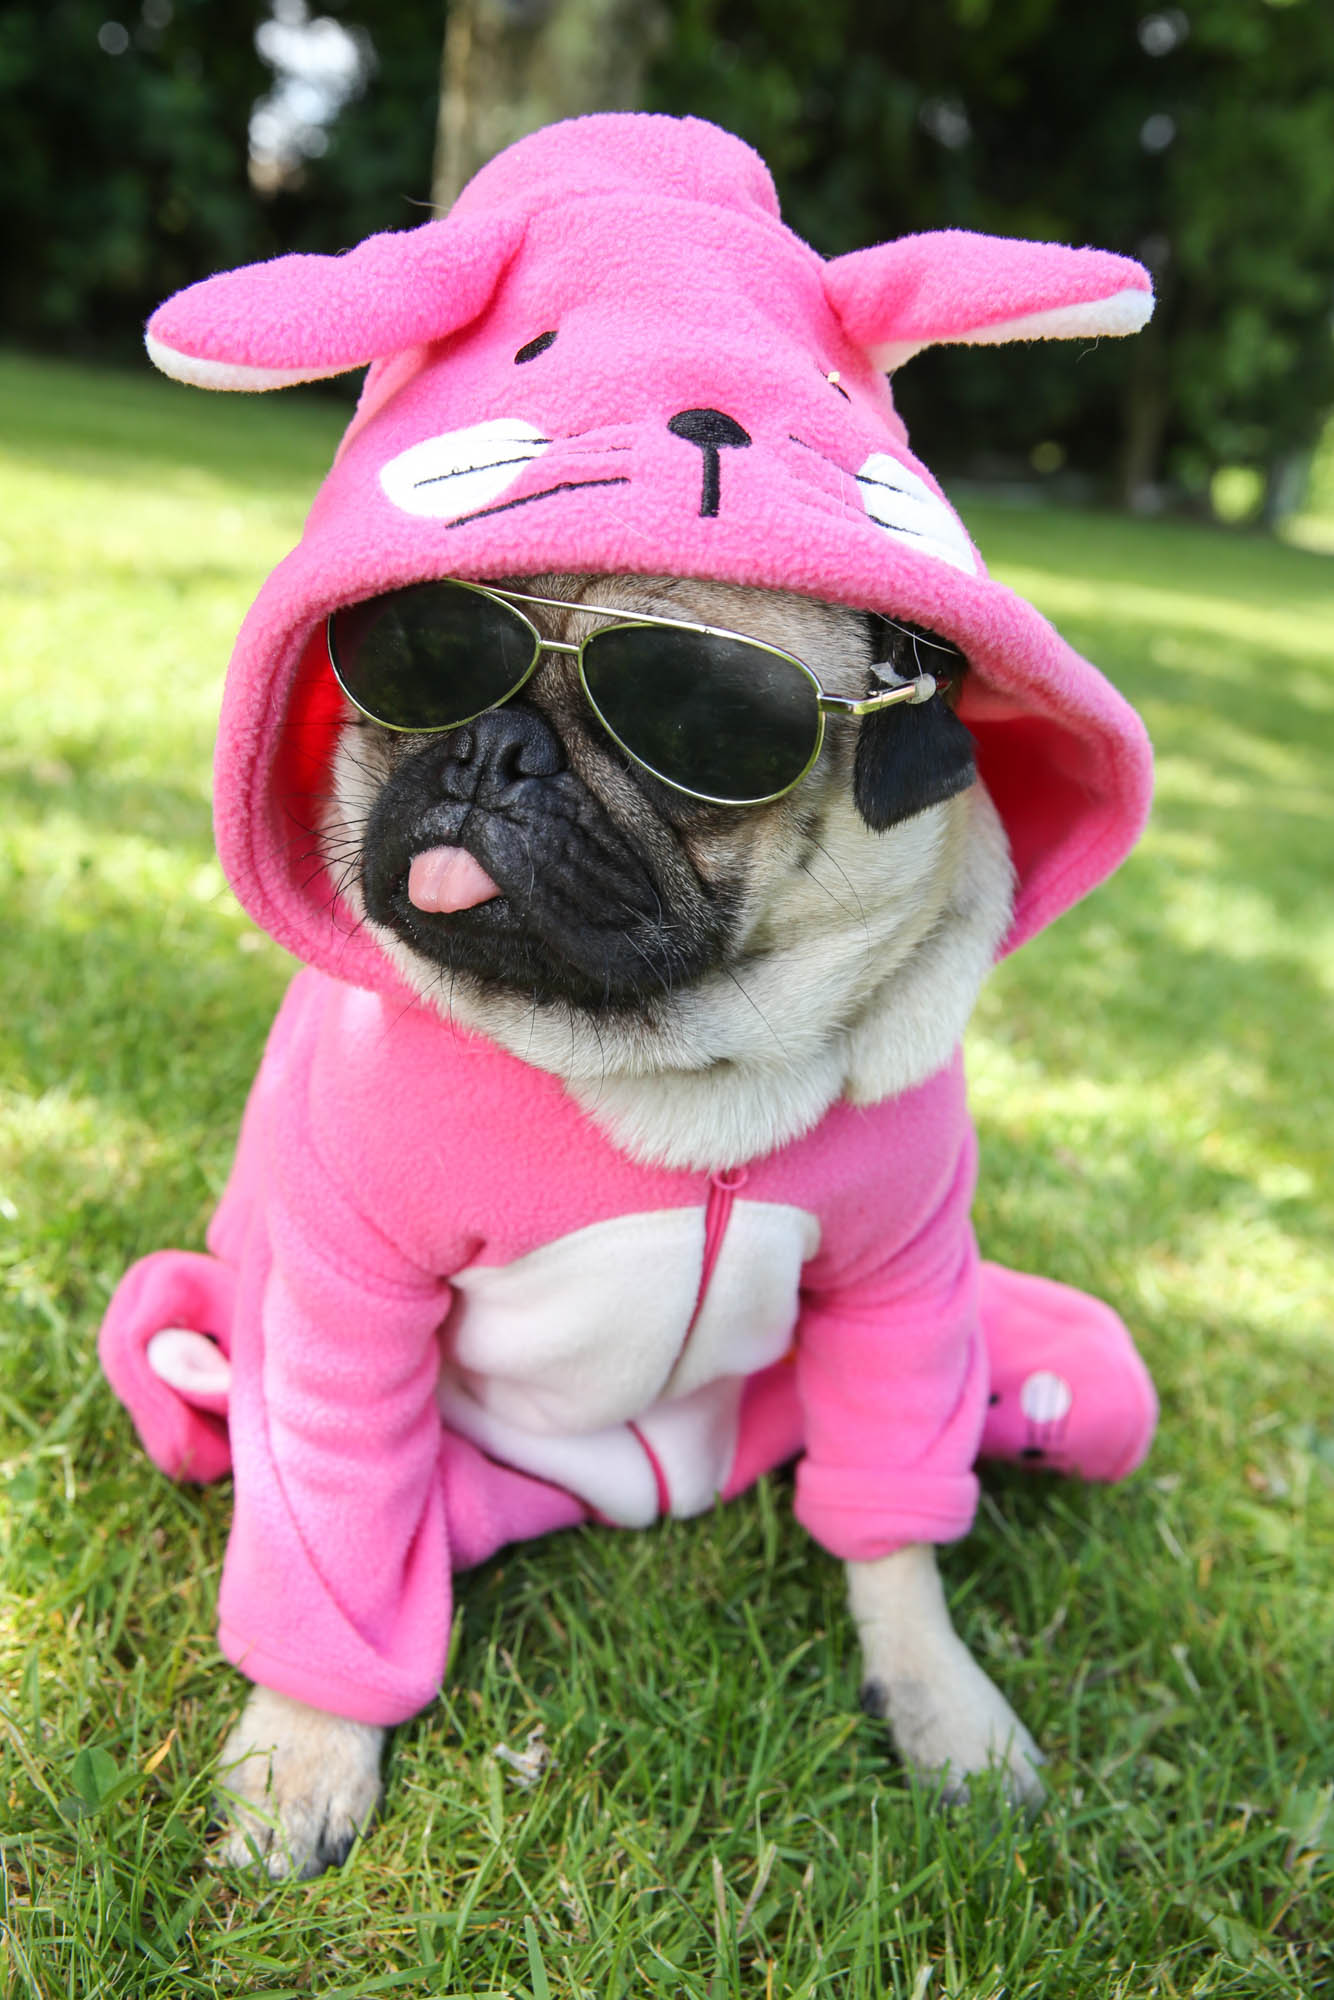 A dressed up pug with its tongue stuck out